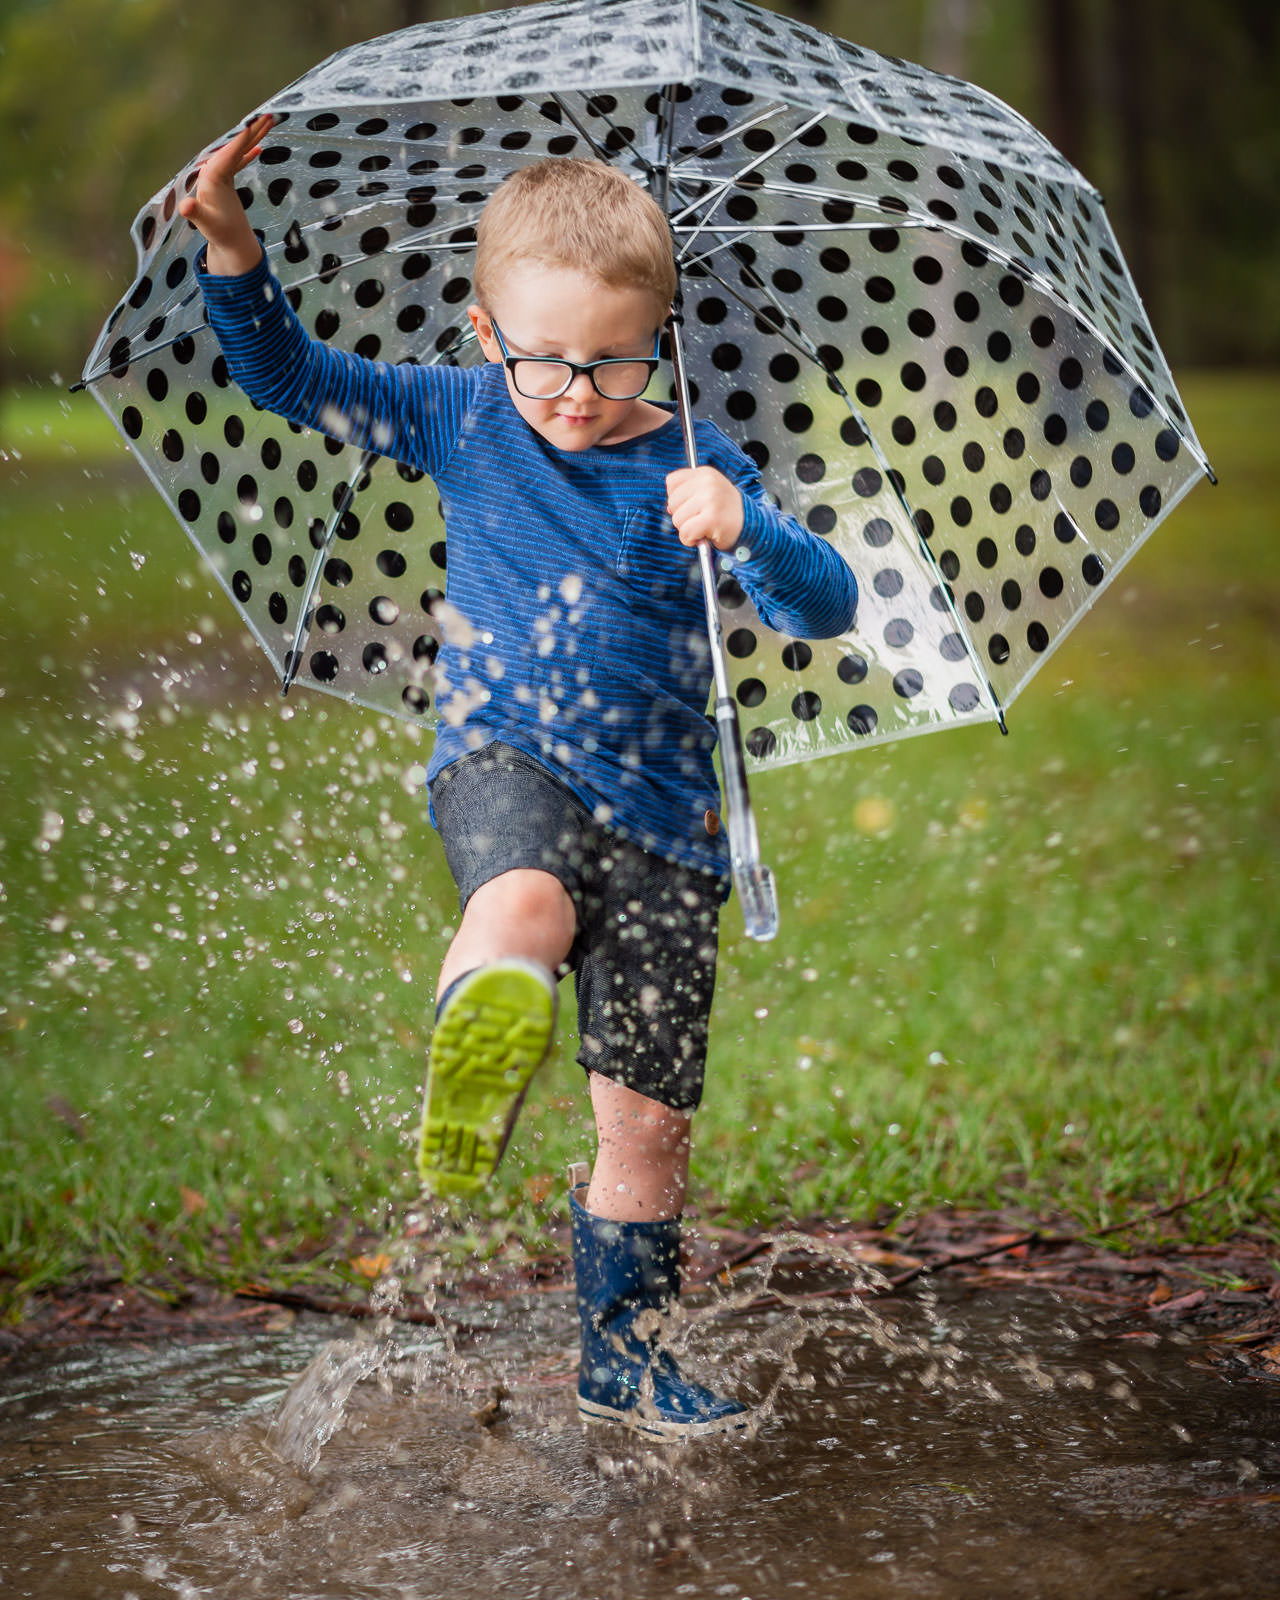 Young boy splashing in puddles in the park with a big clear umbrella as it rains | caboolture outdoor family photographer